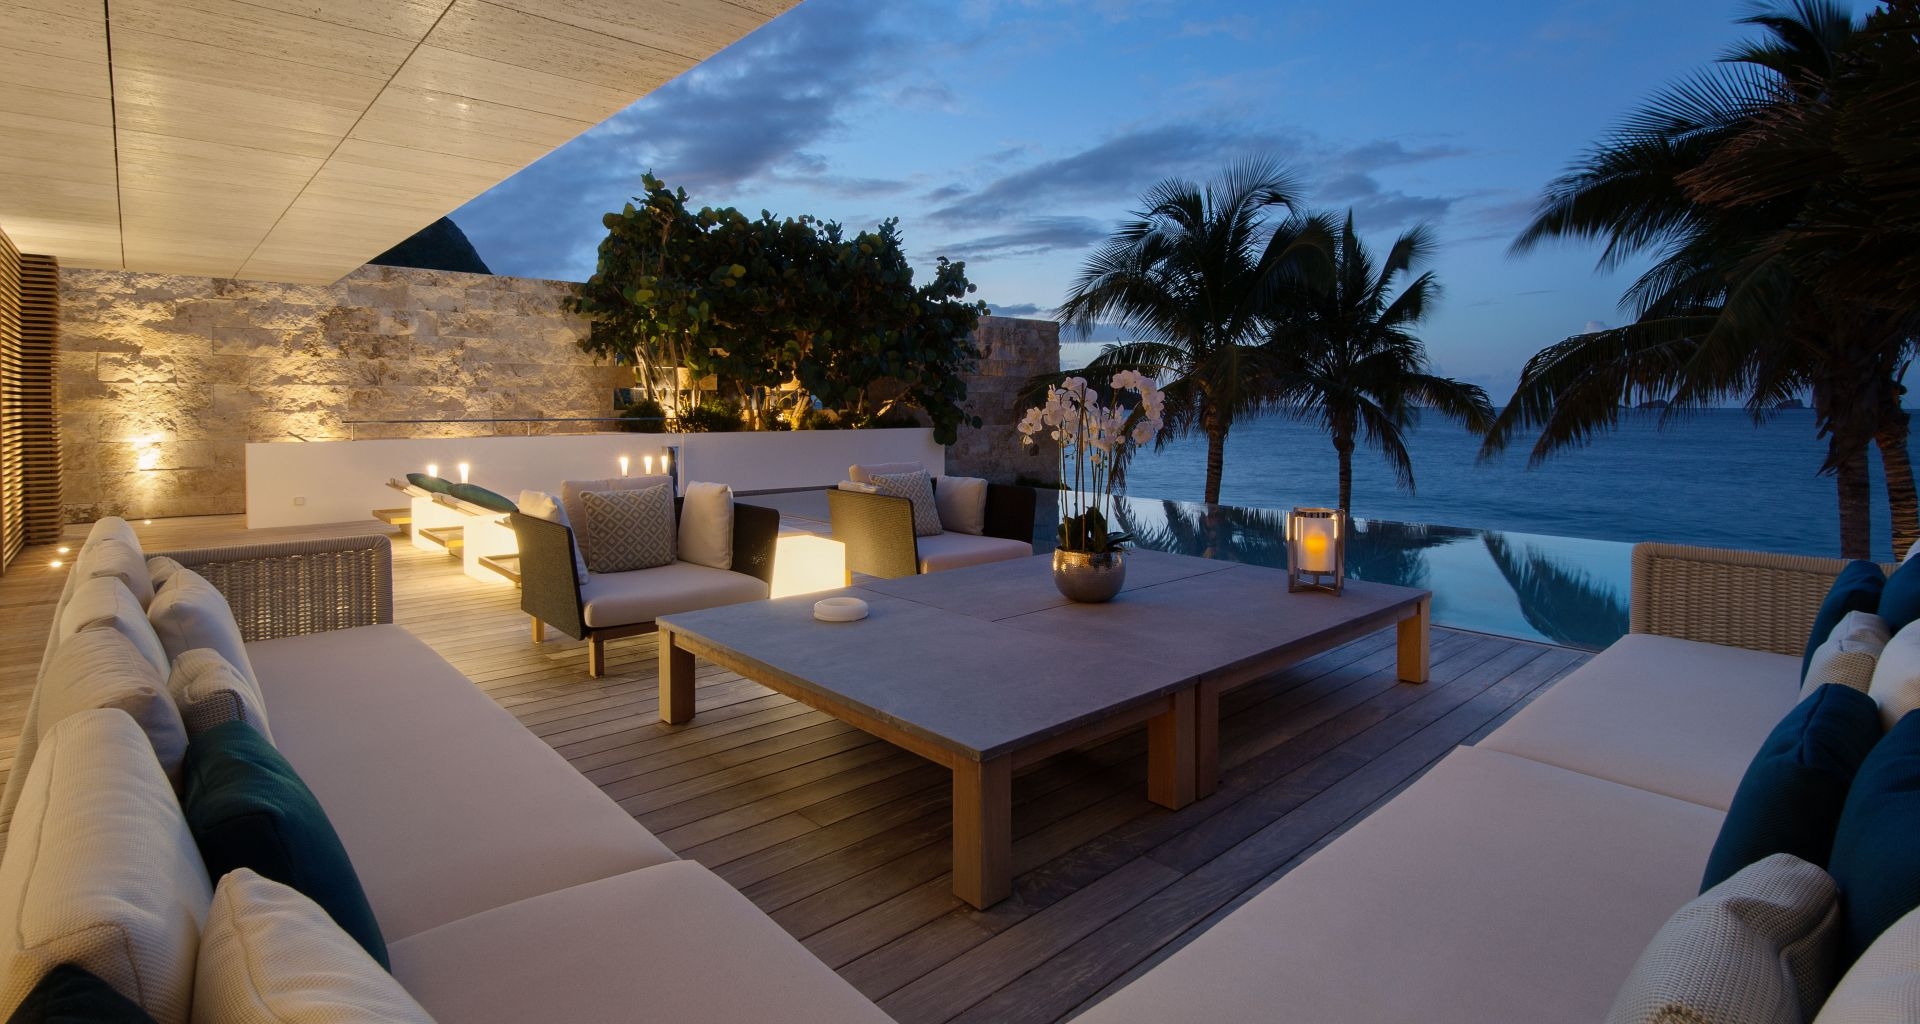 Villa Wake Up, St-Barts, Caribbean